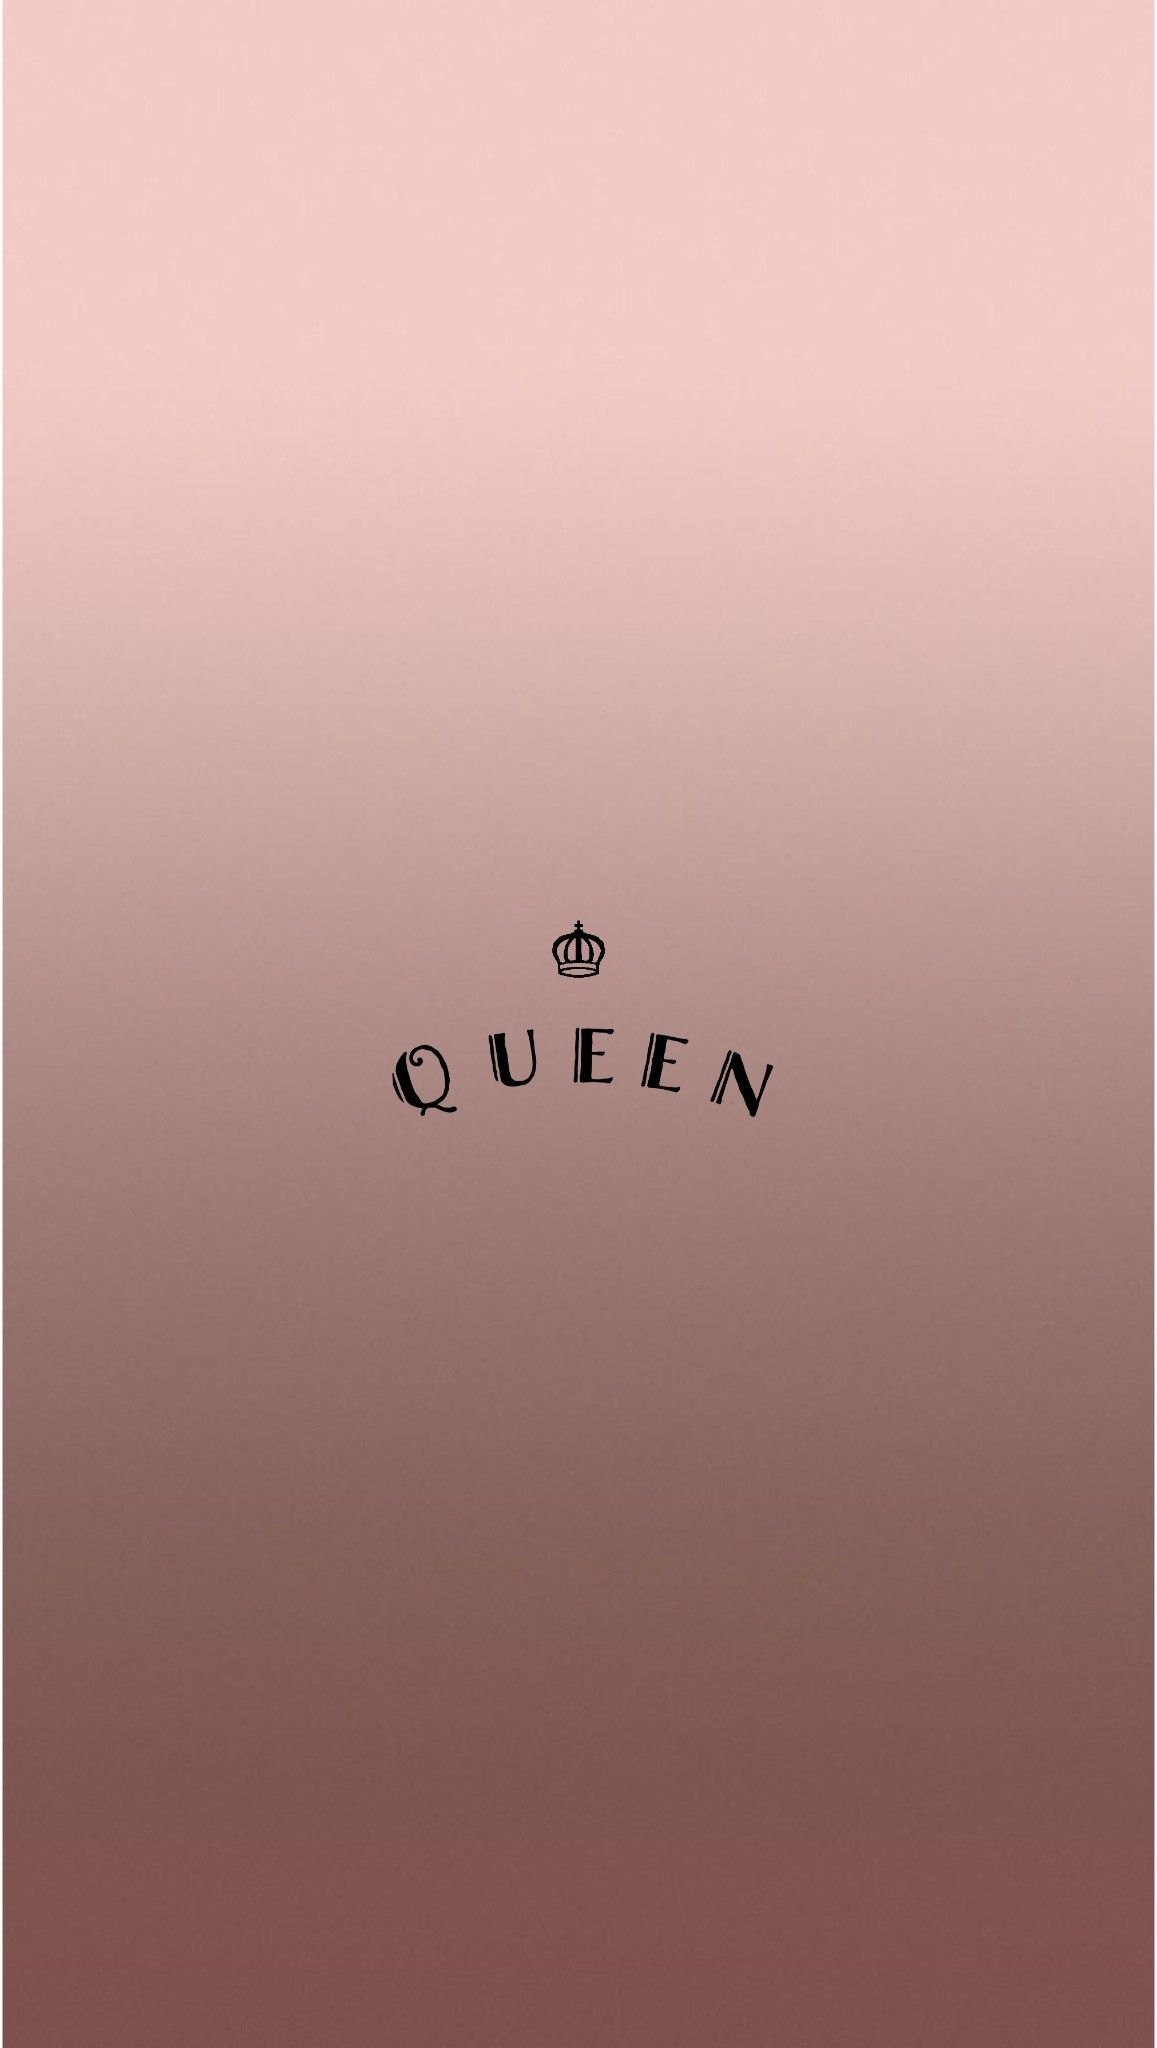 1157x2048 Rose Gold Queen iPhone Wallpaper by @EvaLand #iphone3